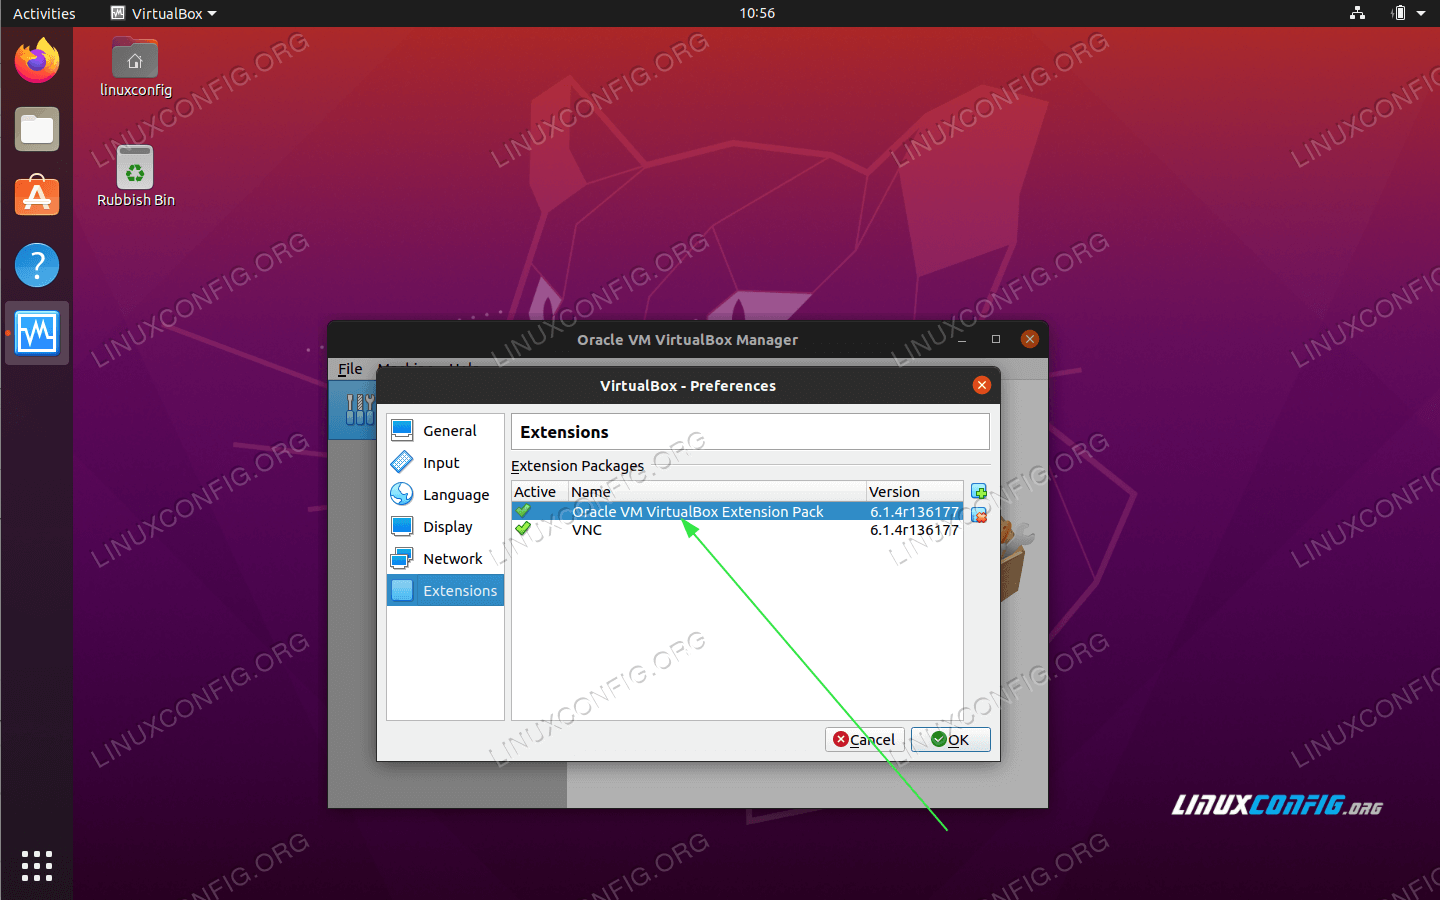 The new VirtualBox Extension Pack and its version number information should now be available